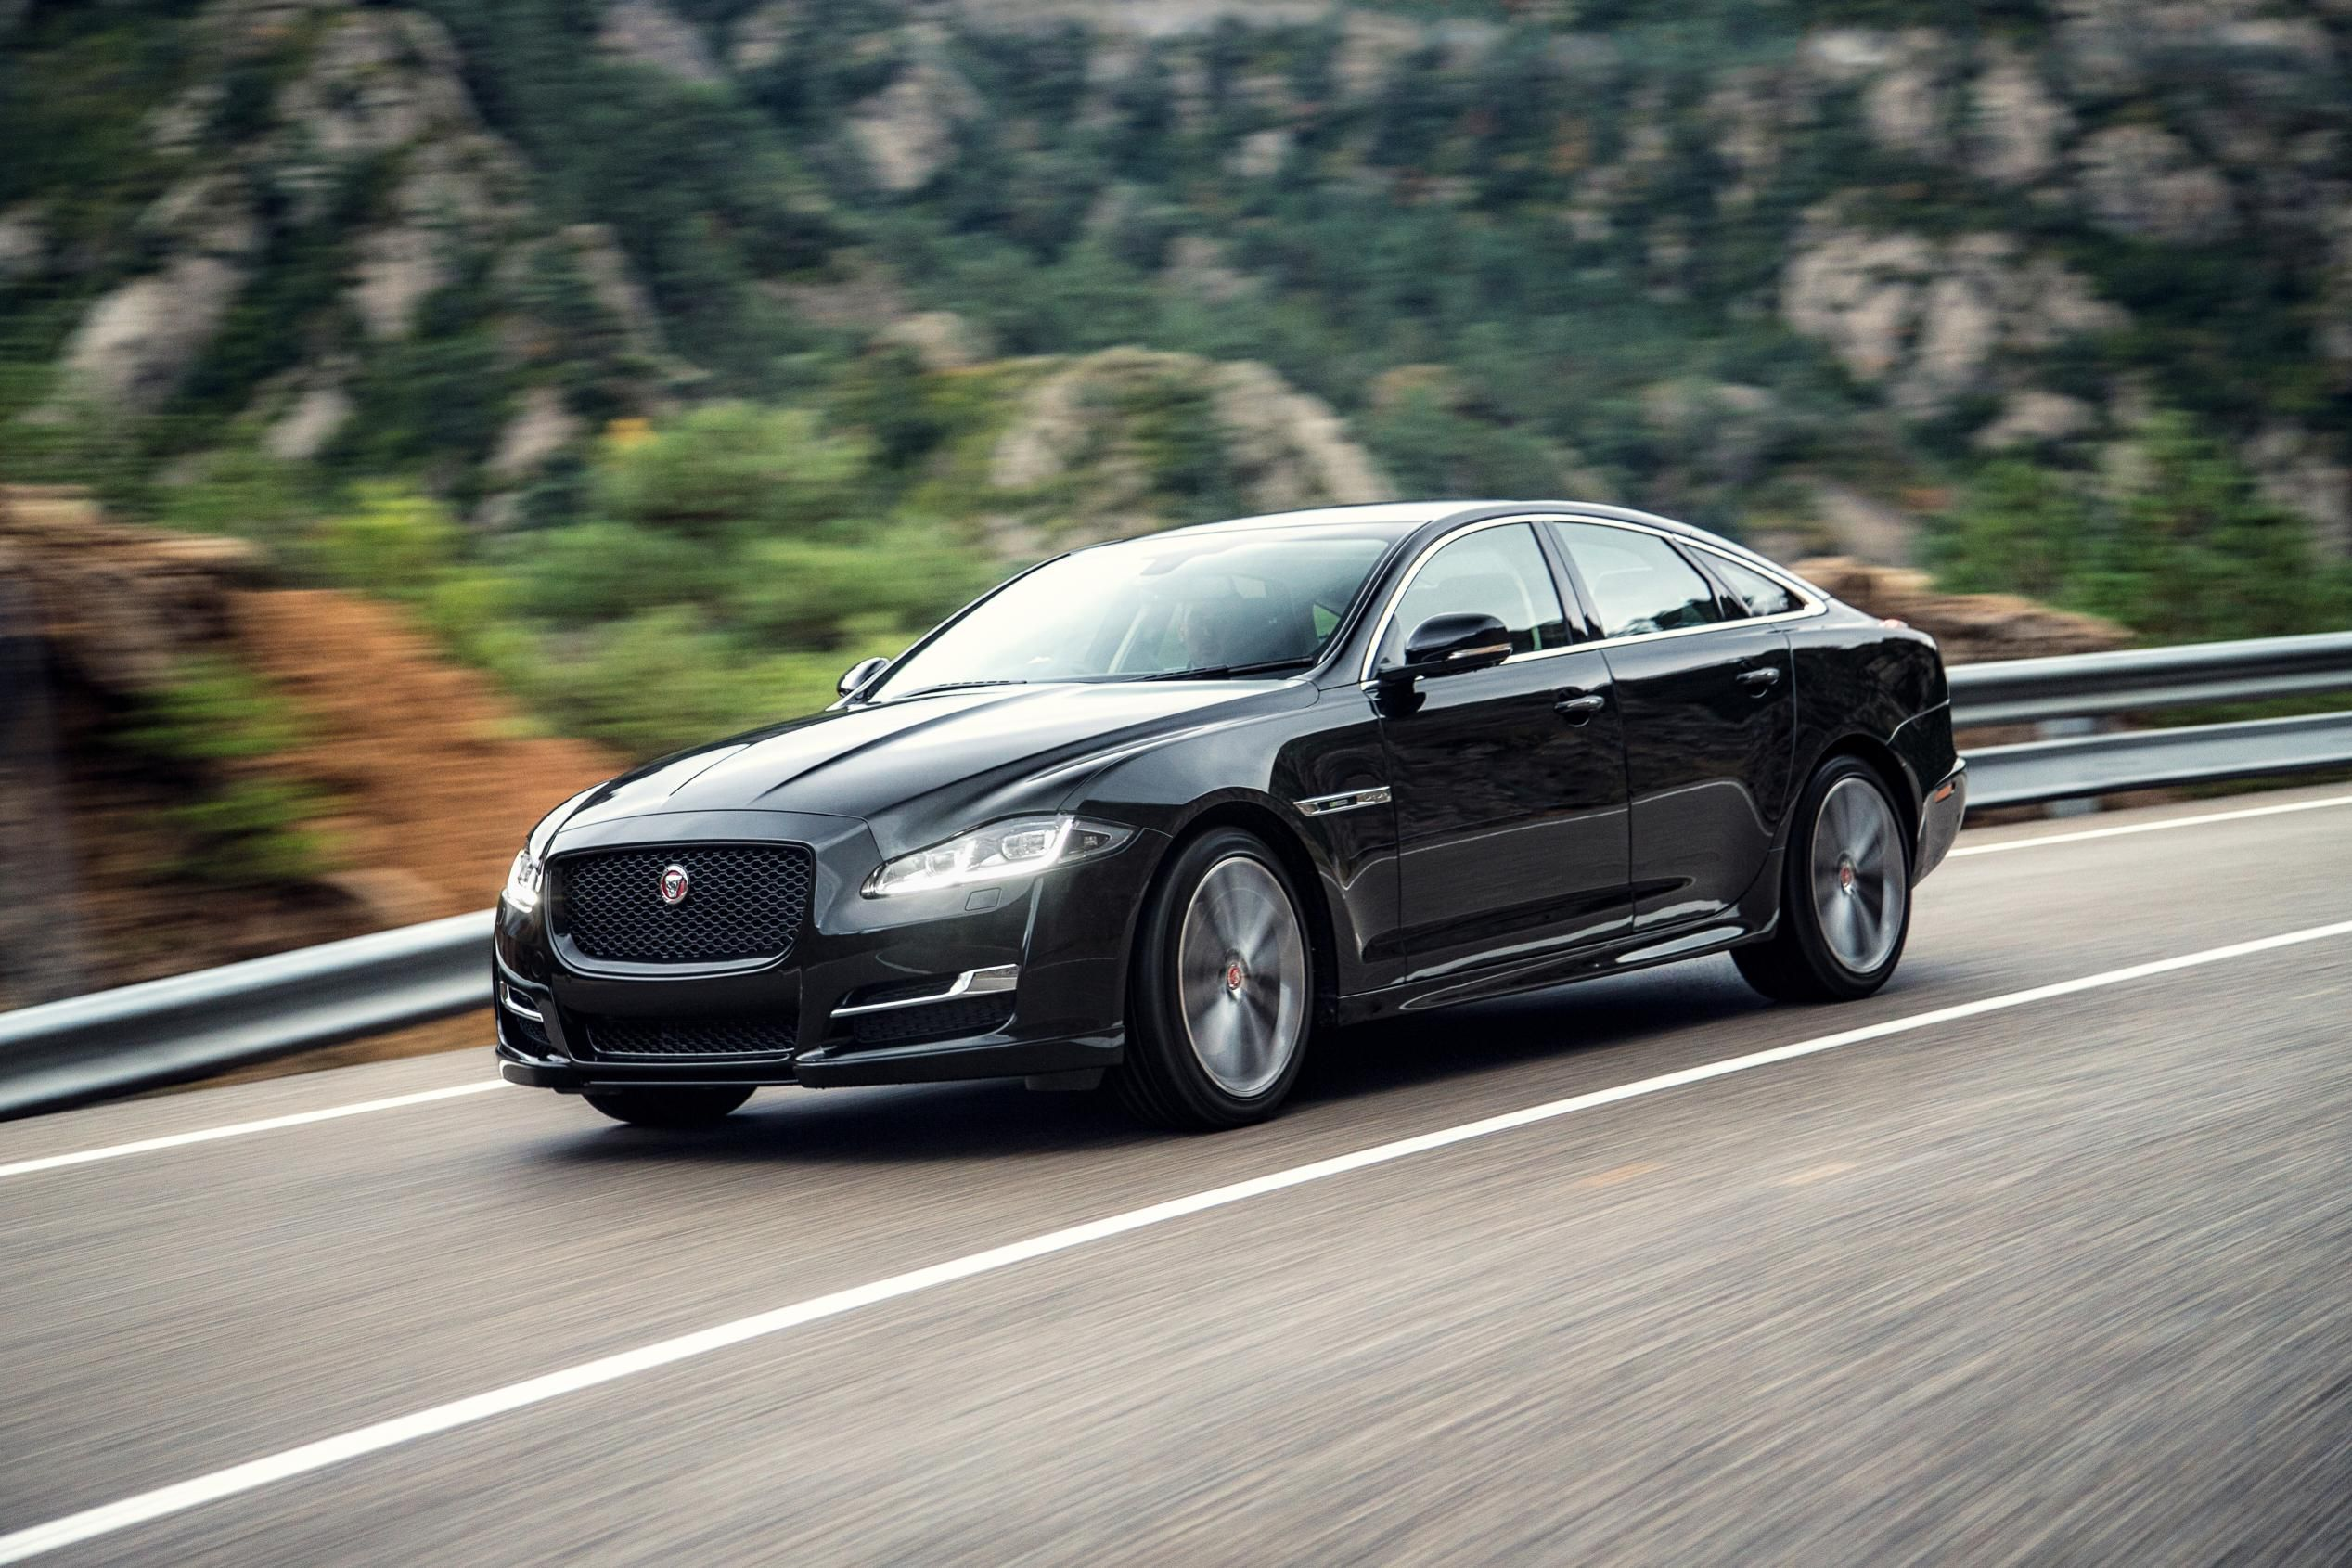 Side view of Jaguar XJ driving on a road